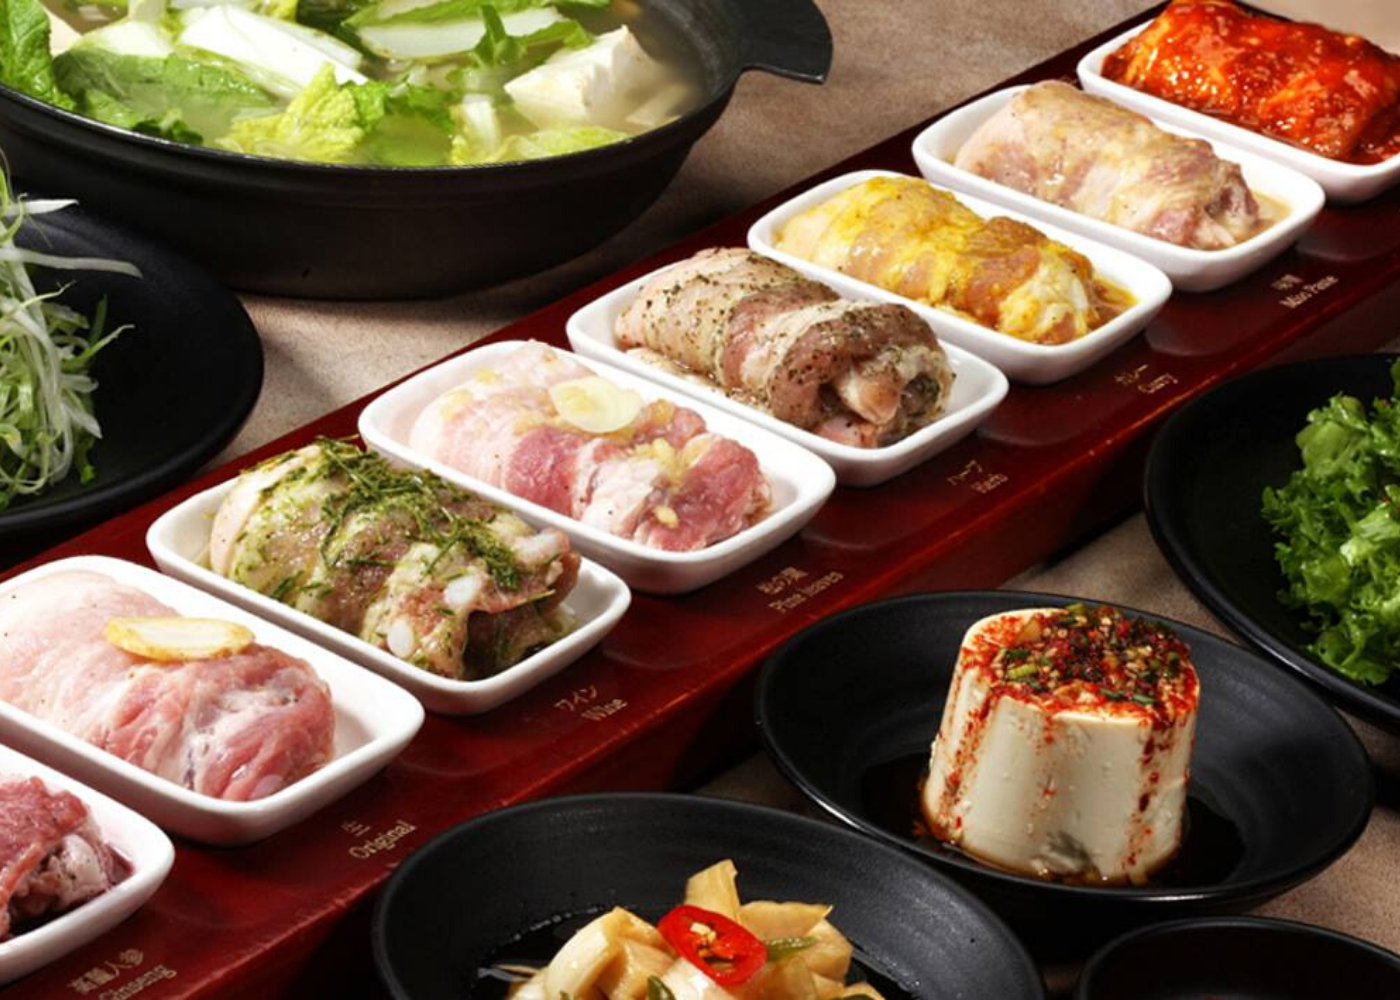 Korean BBQ restaurants in Singapore: 8 Korean BBQ